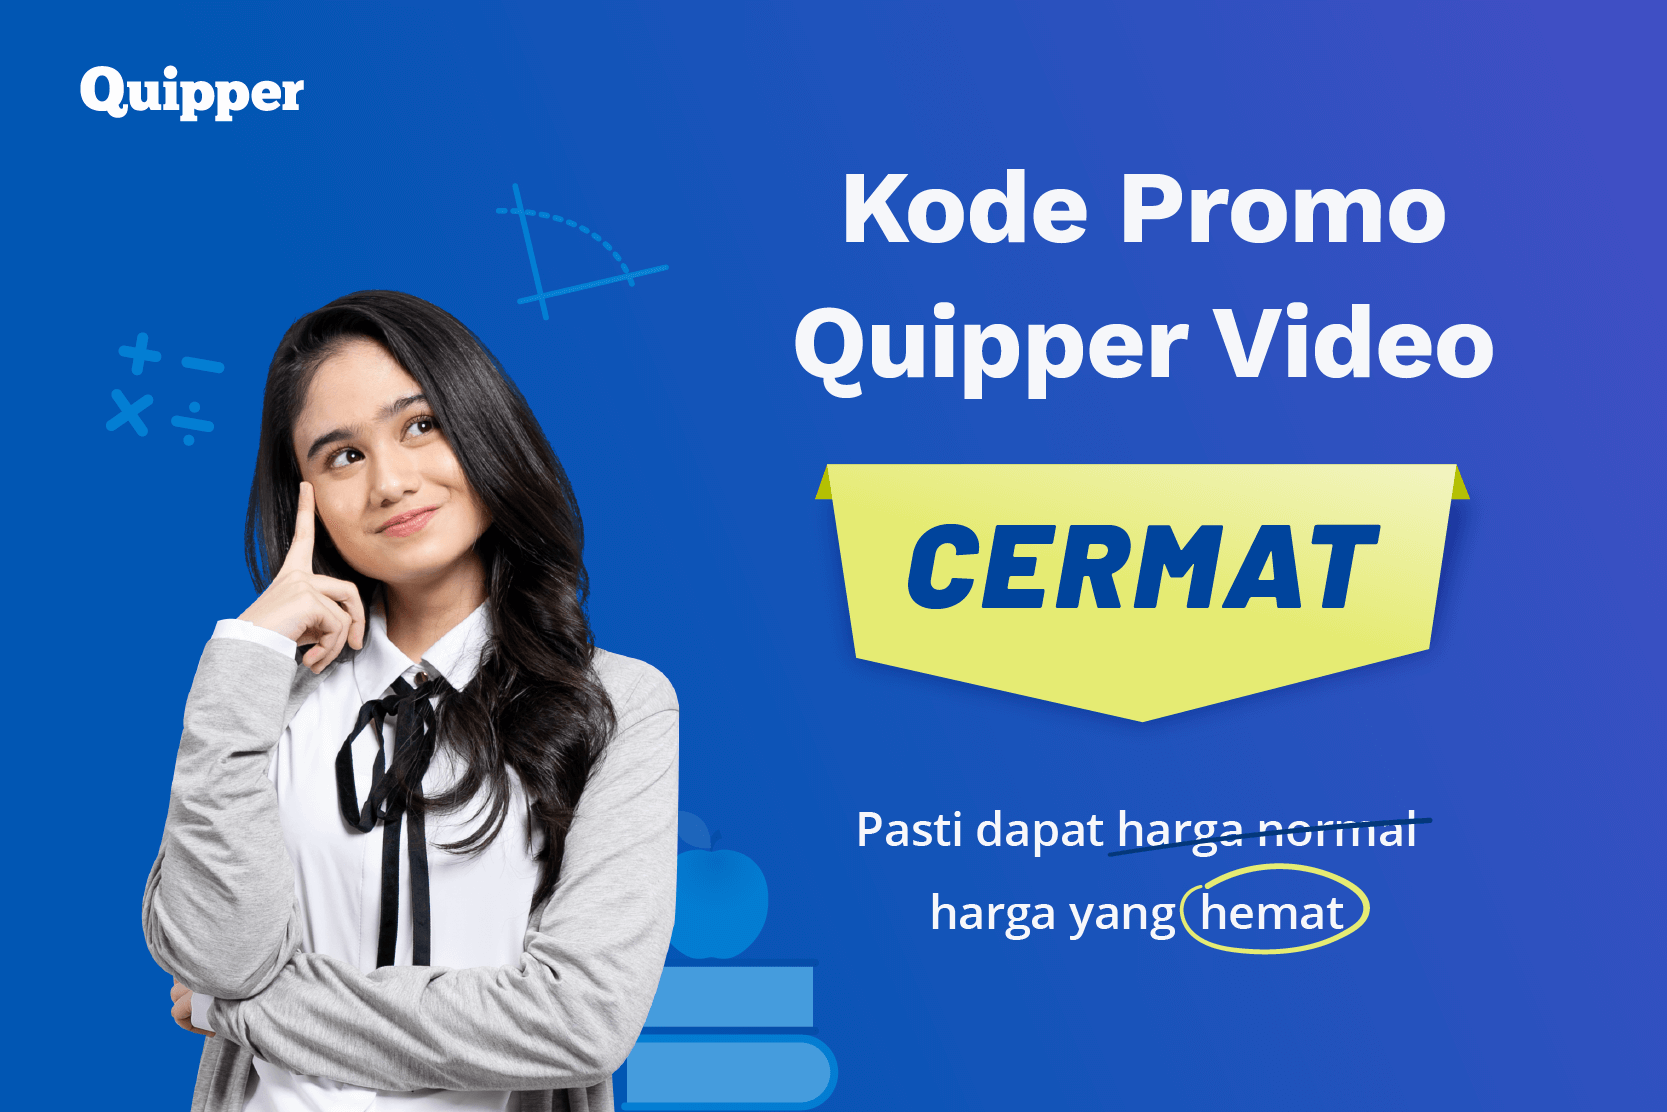 Kode Promo Quipper Video - Jul 20